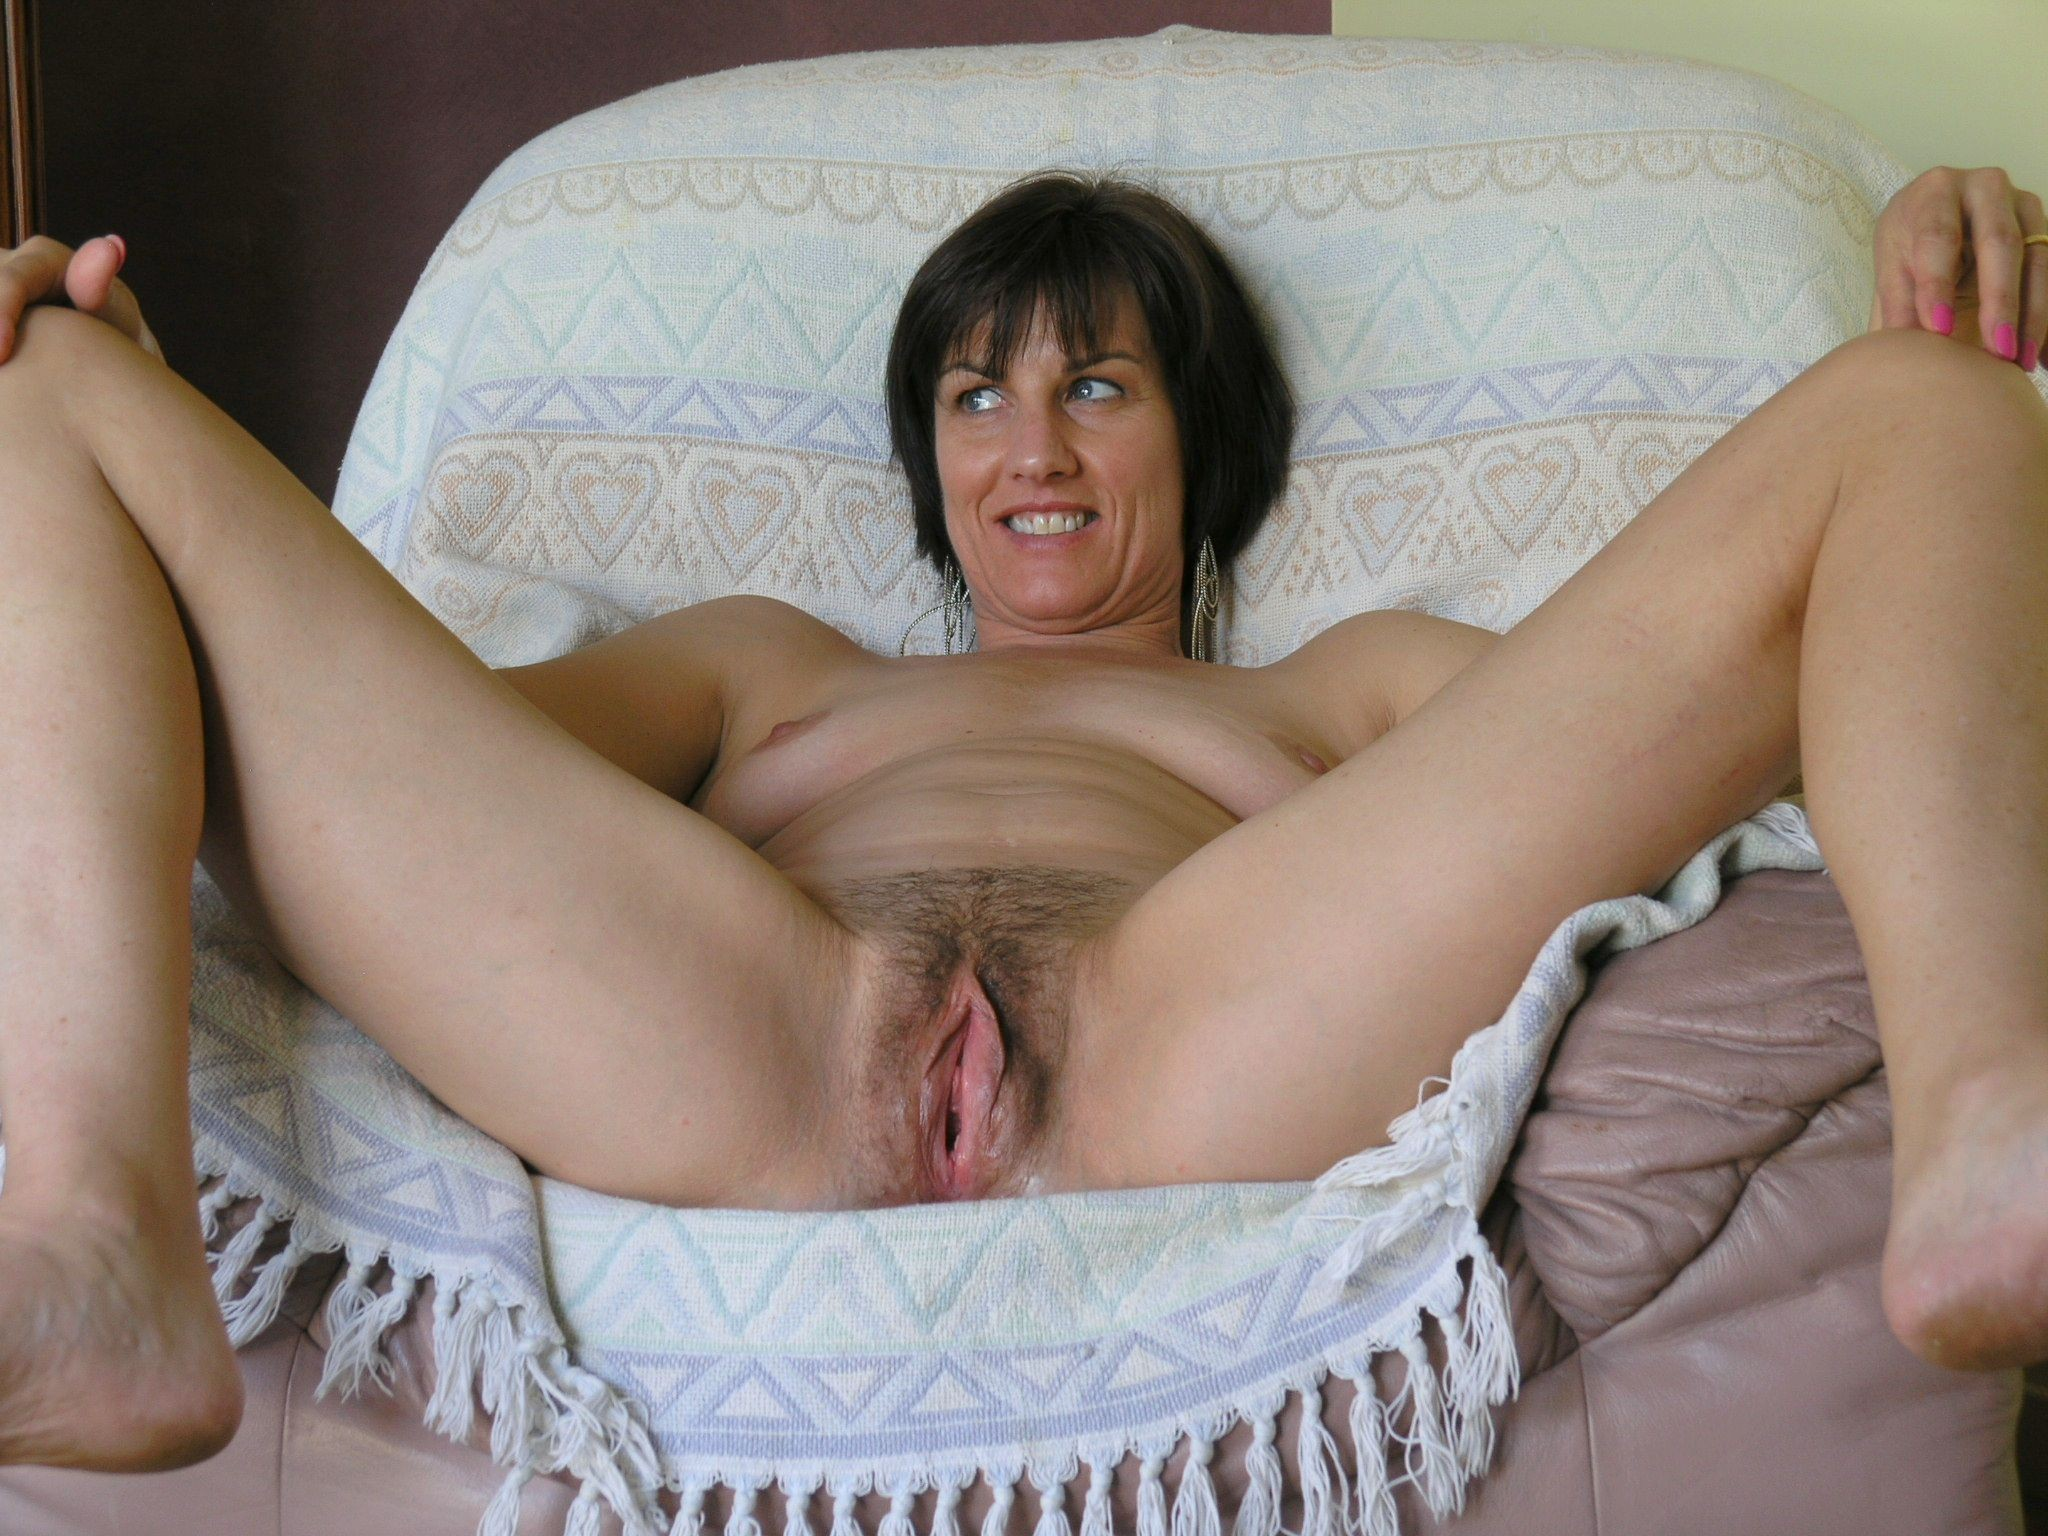 Nude housewife gallery